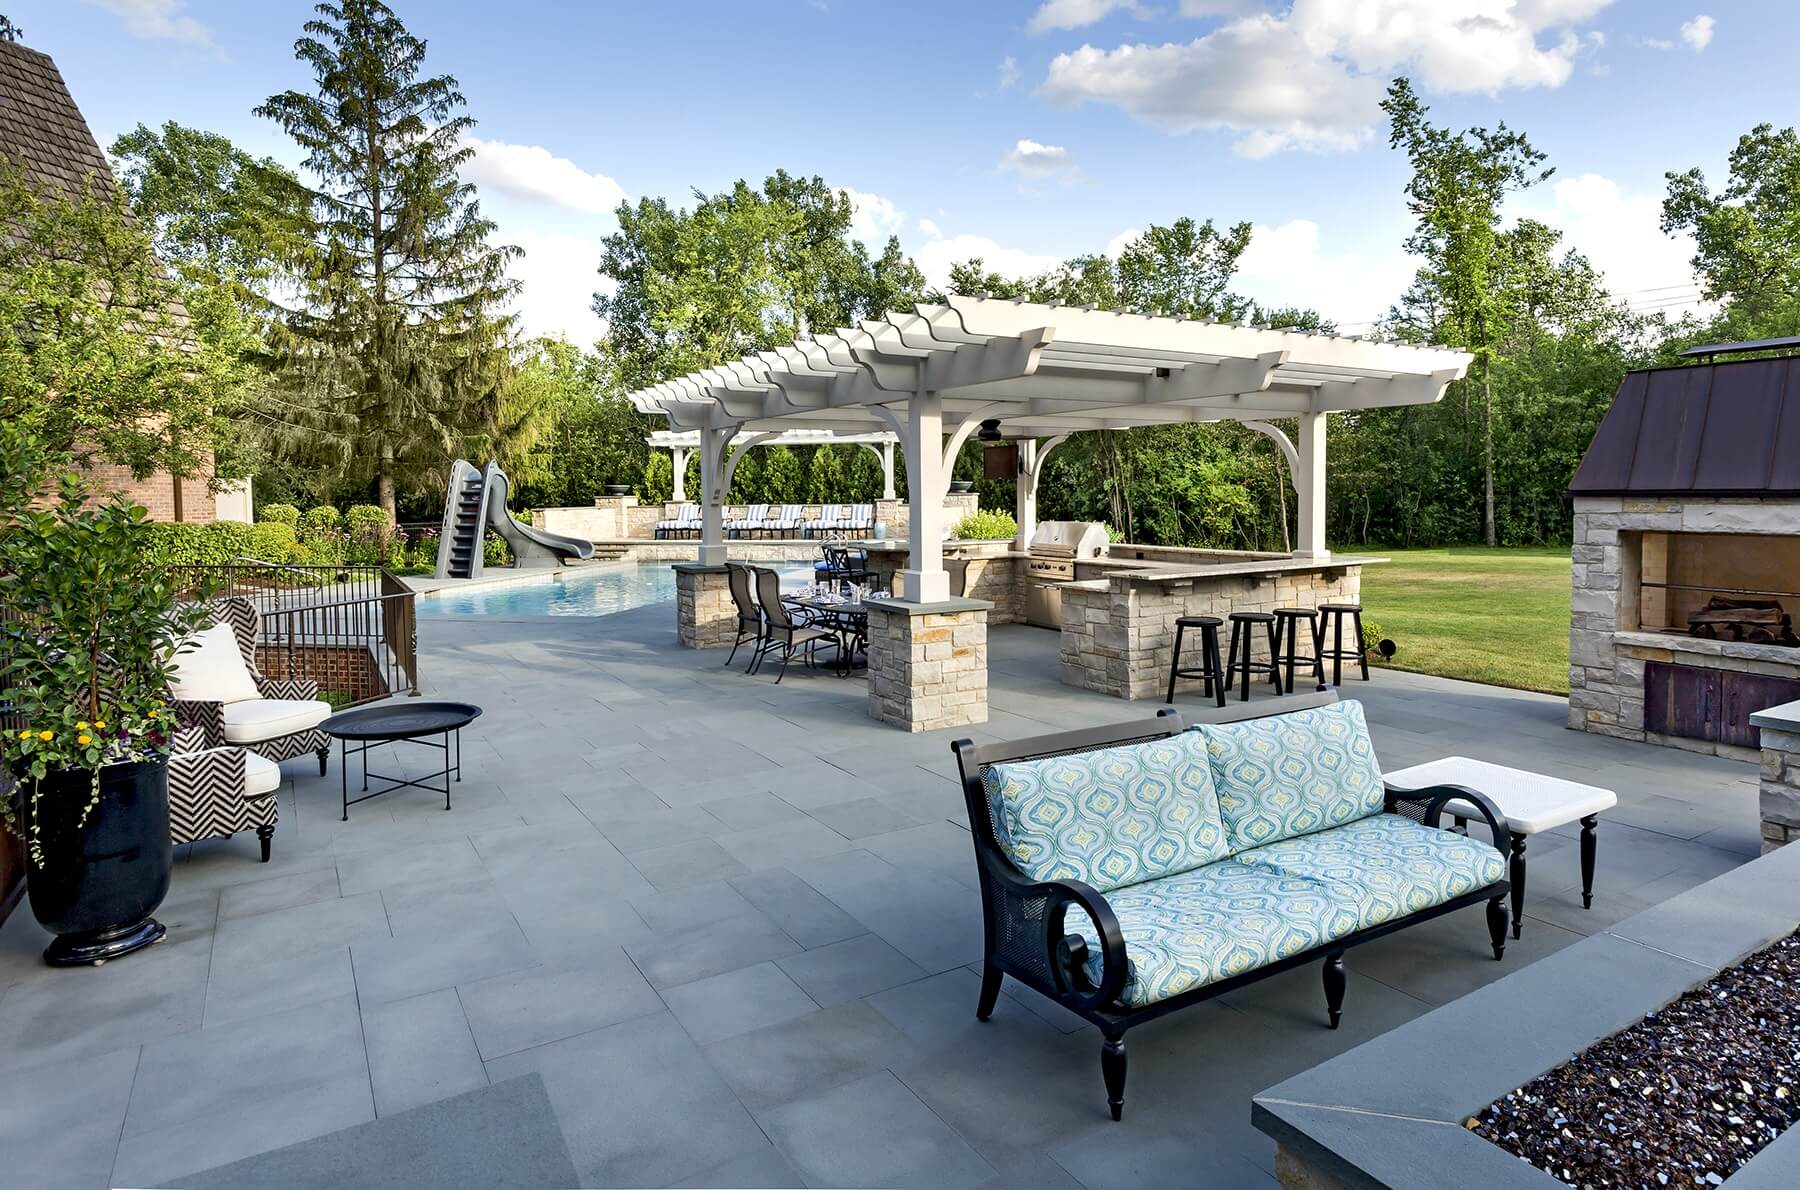 deck patio with fire pit. A Backyard With The \u201cWOW\u201d Factor Deck Patio Fire Pit G